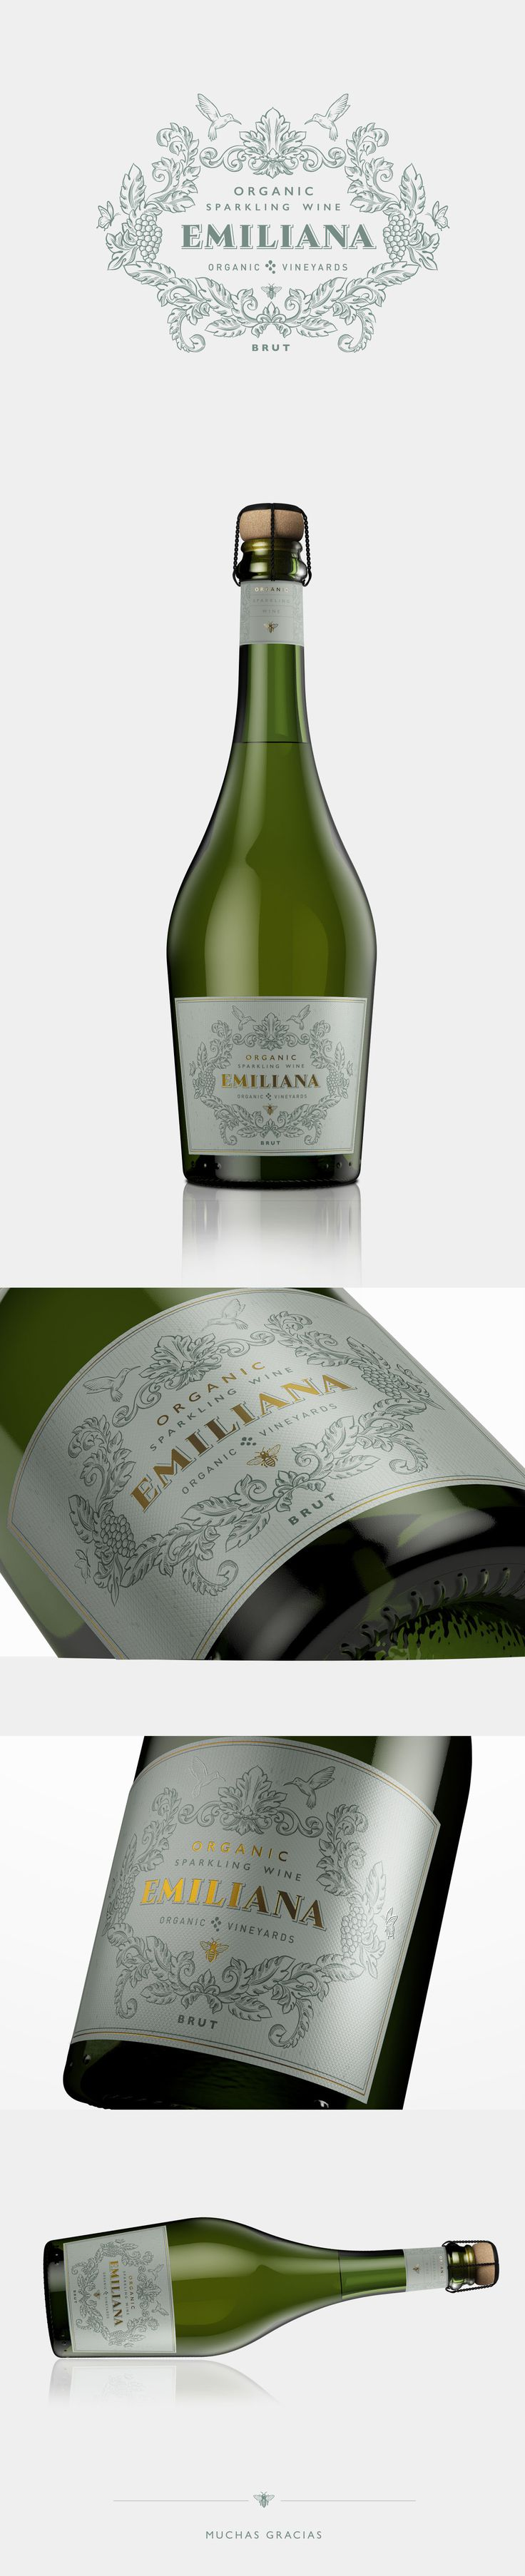 Label / Organic Sparkling Wine | EMILIANA                                                                                                                                                                                 More